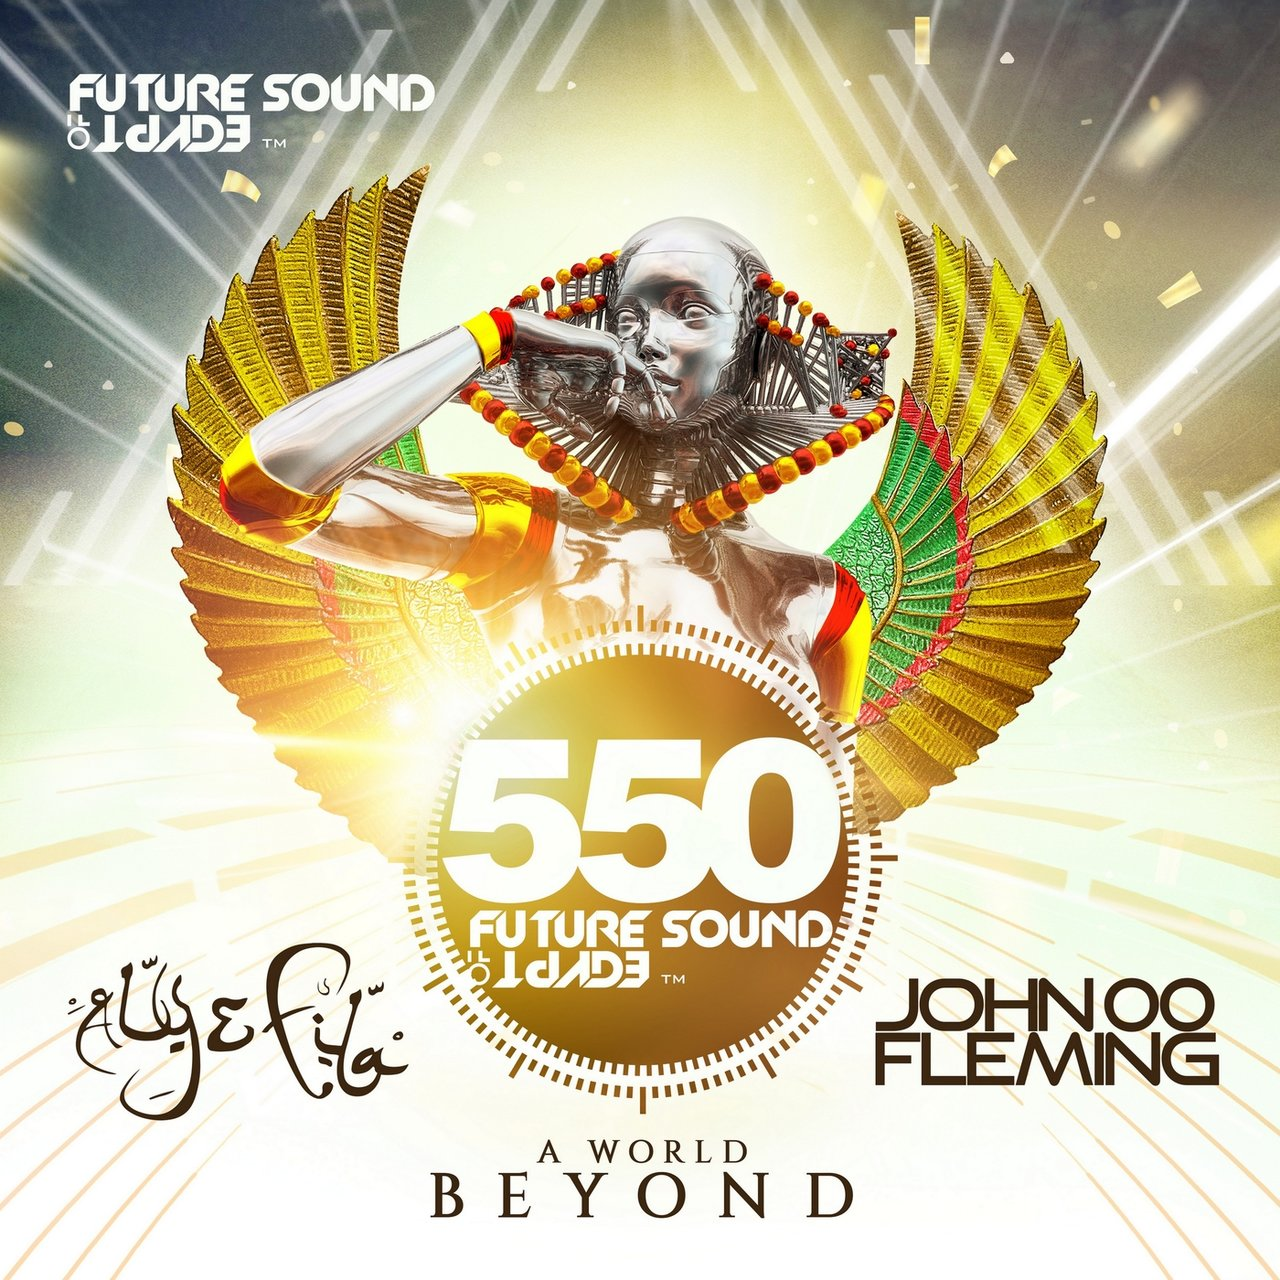 Future Sound of Egypt 550